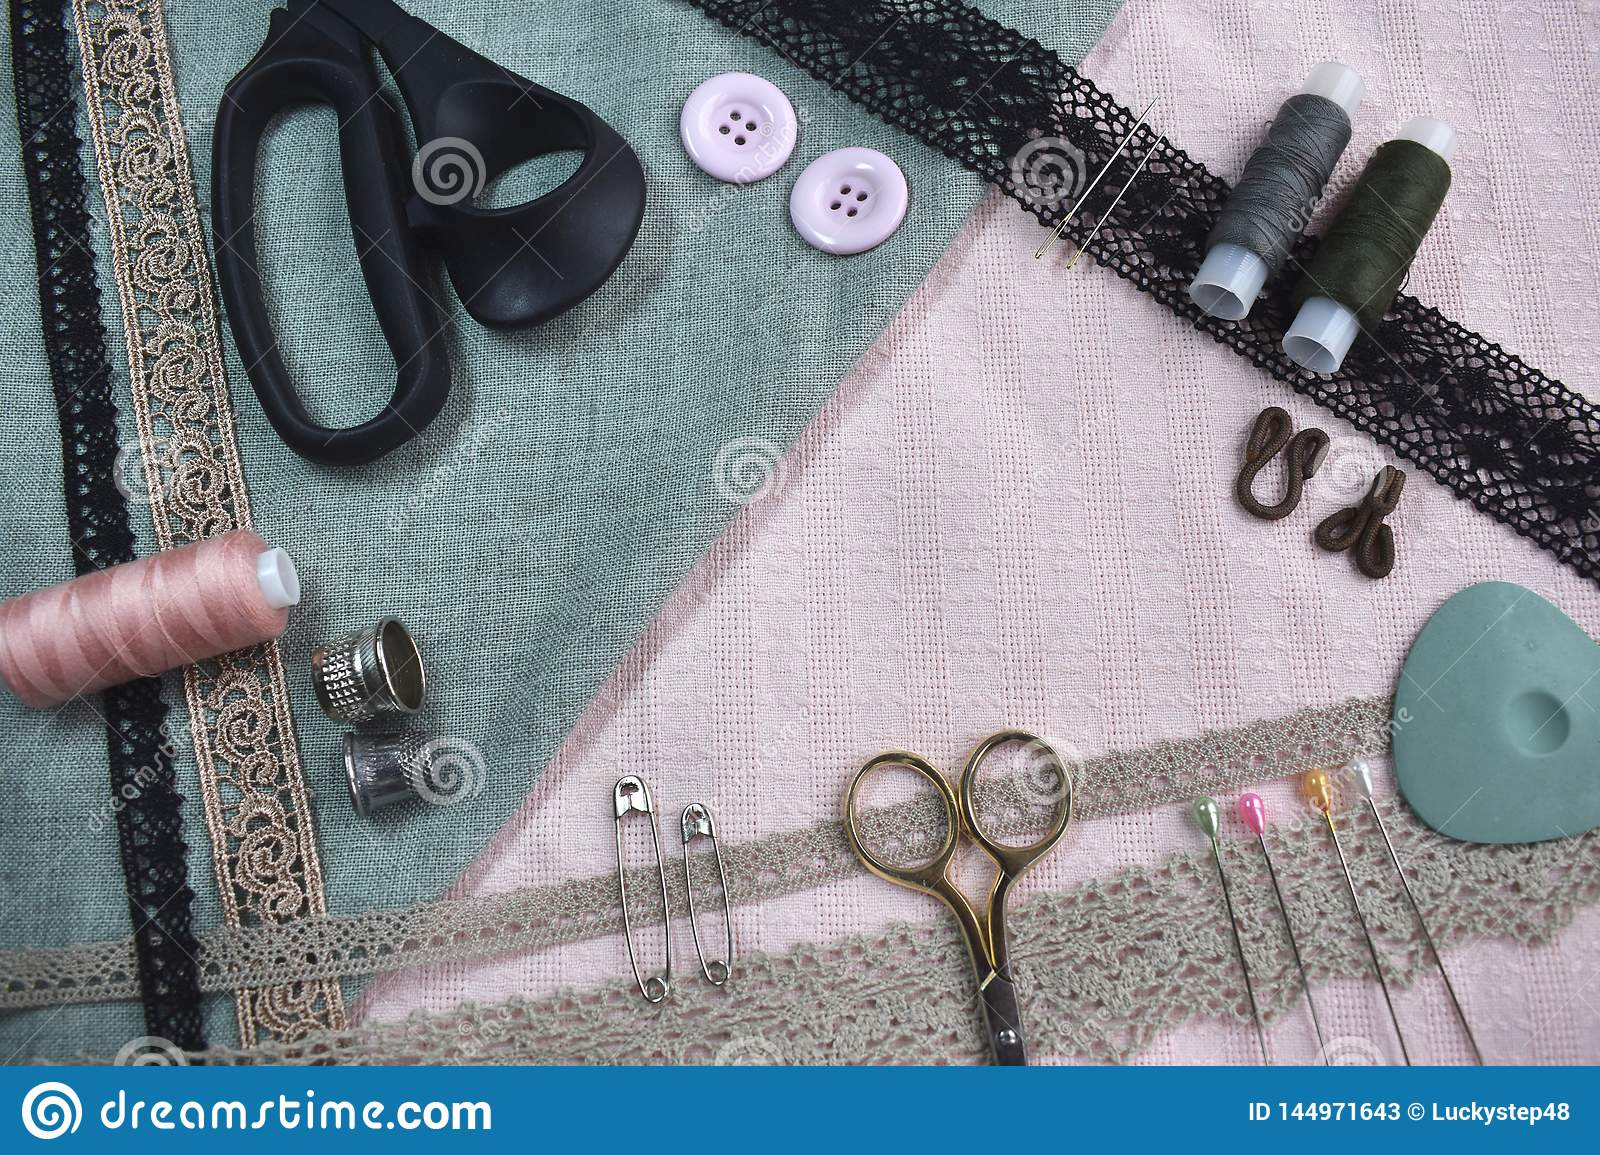 Sewing scene table flat lay composition. Threads, lace, pins, scissors, tape, reel, cloth. Pastel colors rose pink light